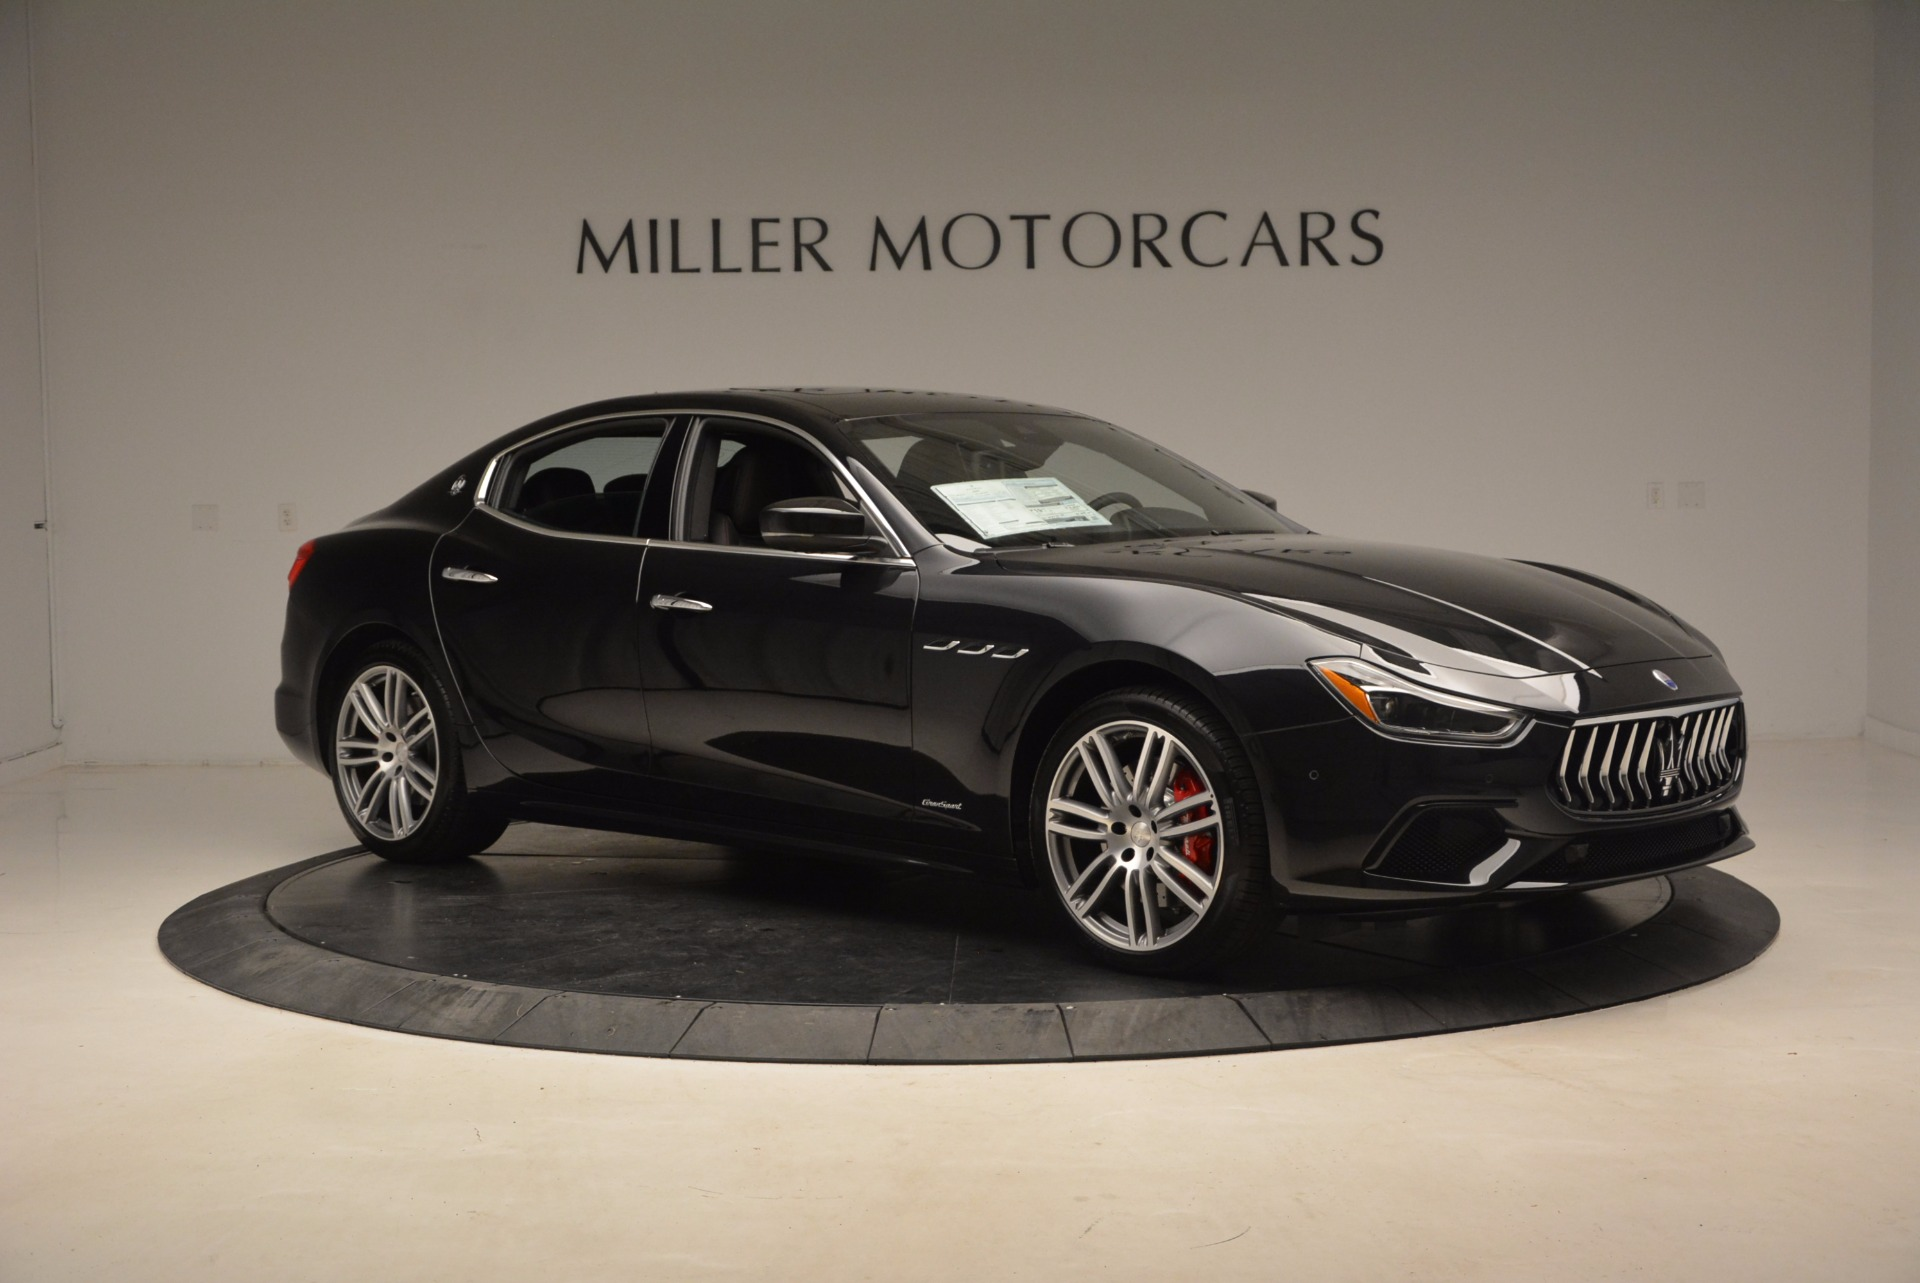 New 2018 Maserati Ghibli S Q4 GranSport For Sale In Greenwich, CT 1569_p10